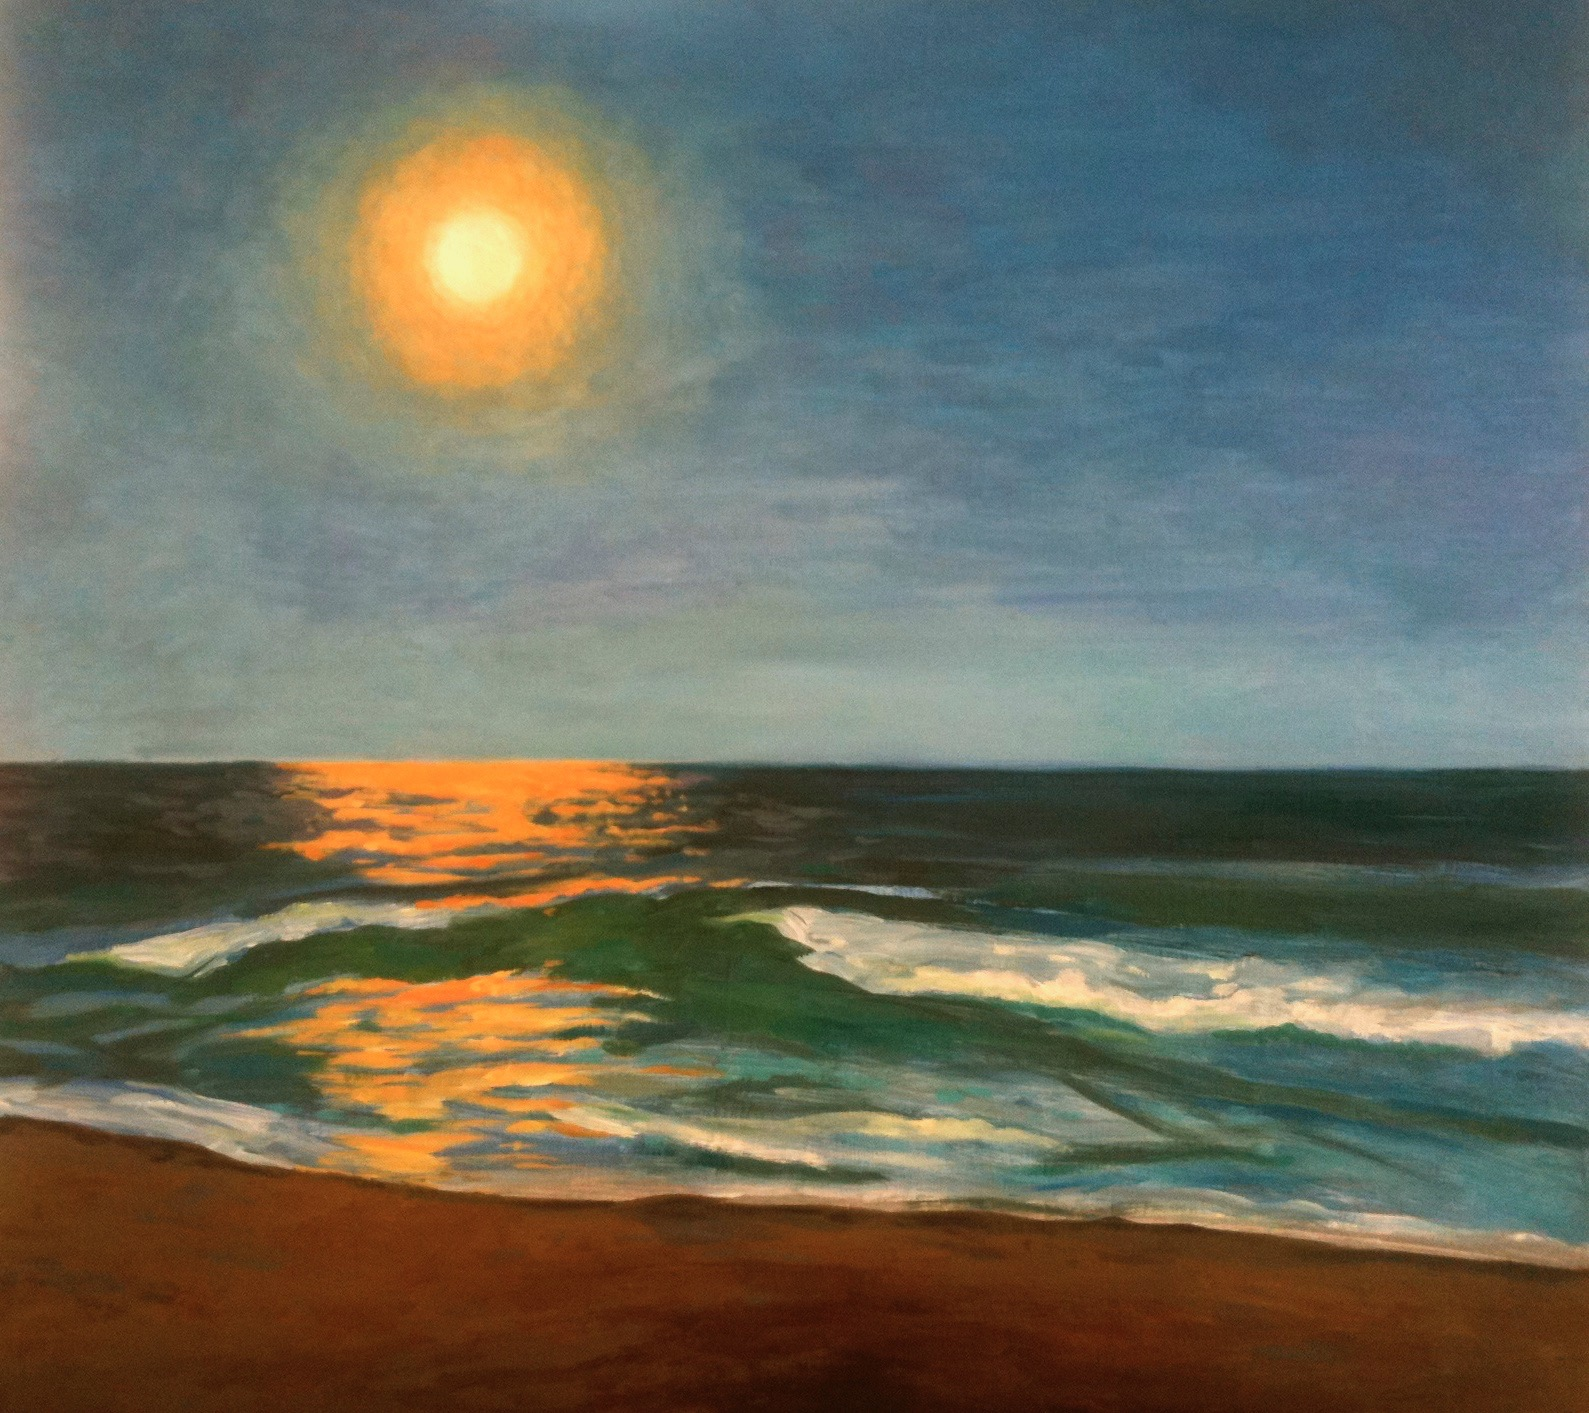 Harvest Moon, 2014, oil on canvas, 20 x 22 in, SOLD